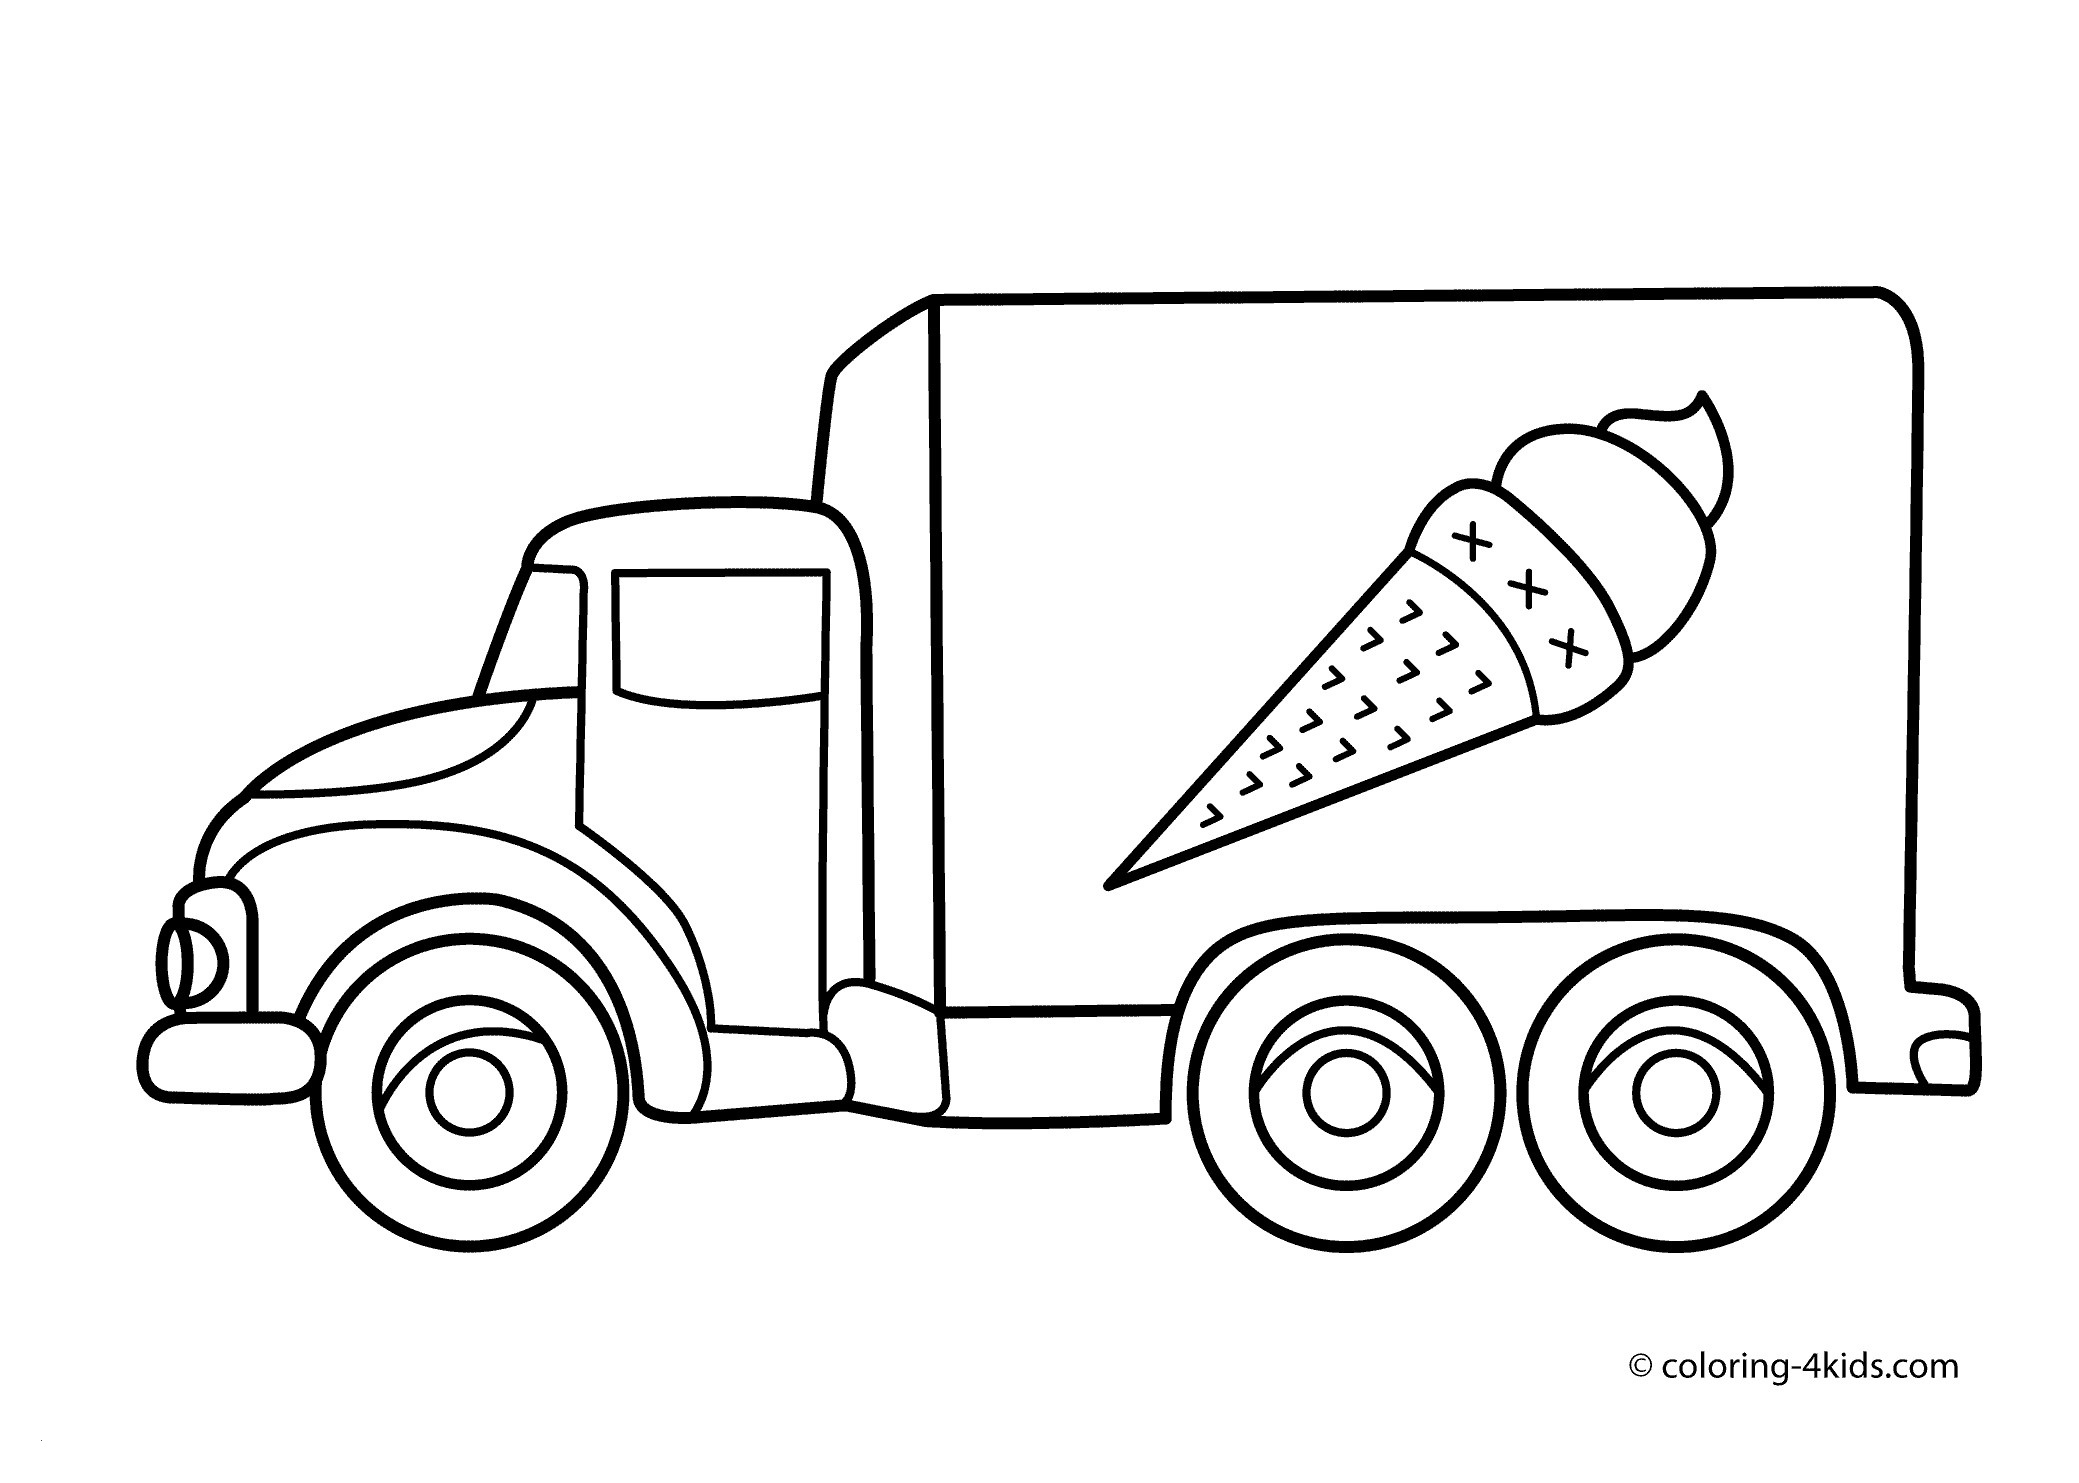 Ford Truck Coloring Pages  Printable 3l - Free Download